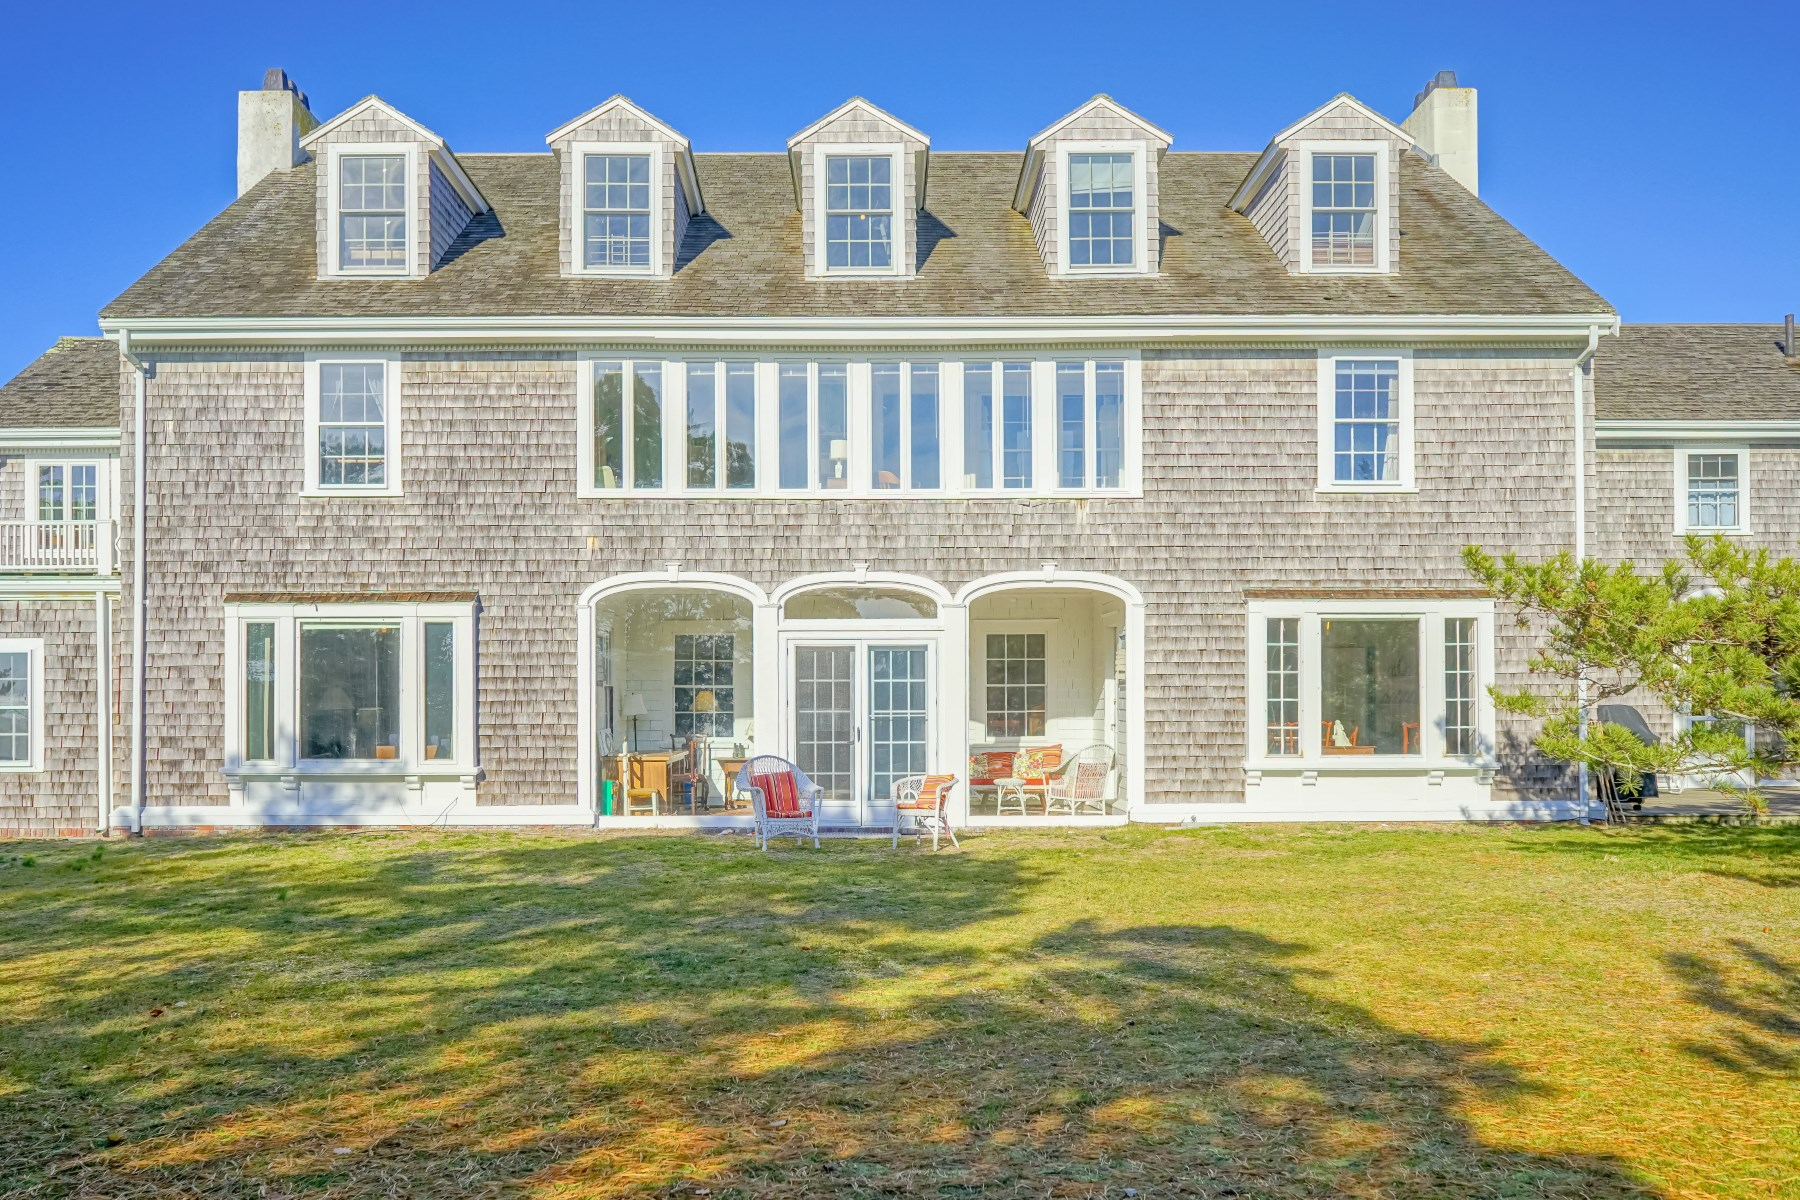 Single Family Home for Active at 979 Sea View Avenue, Osterville, MA 979 Sea View Avenue Osterville, Massachusetts 02655 United States